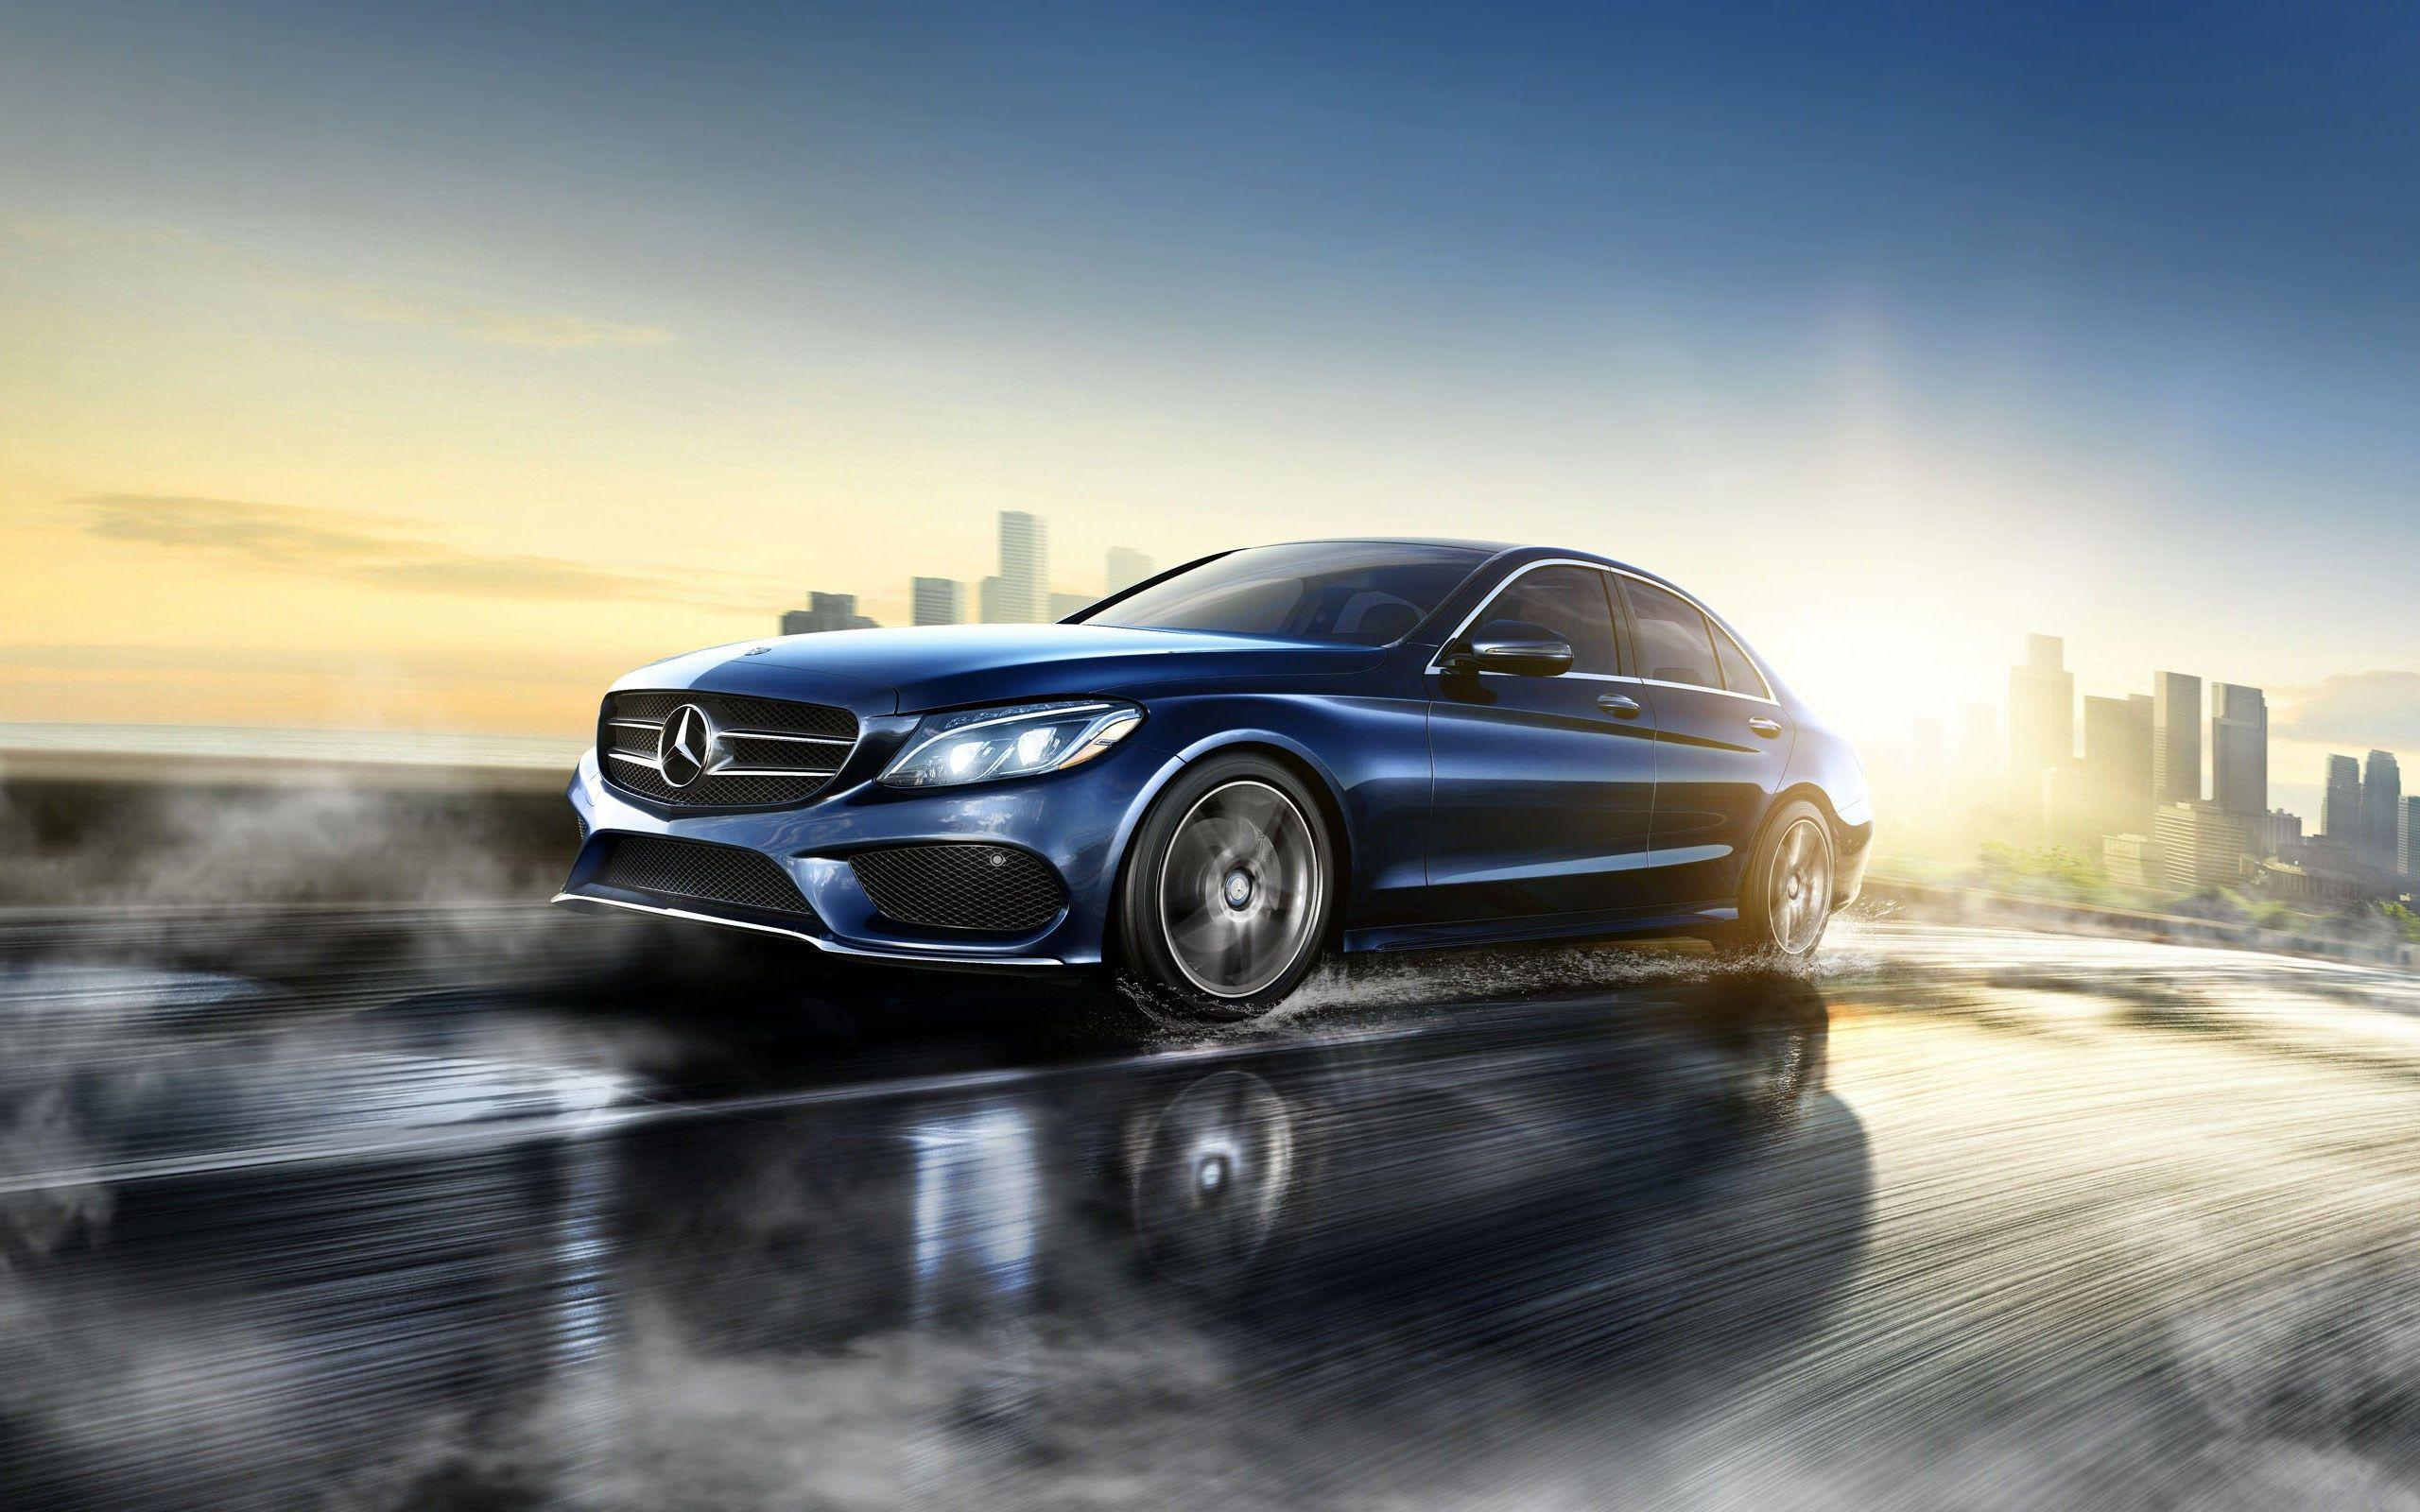 Mercedes C-Class Wallpapers